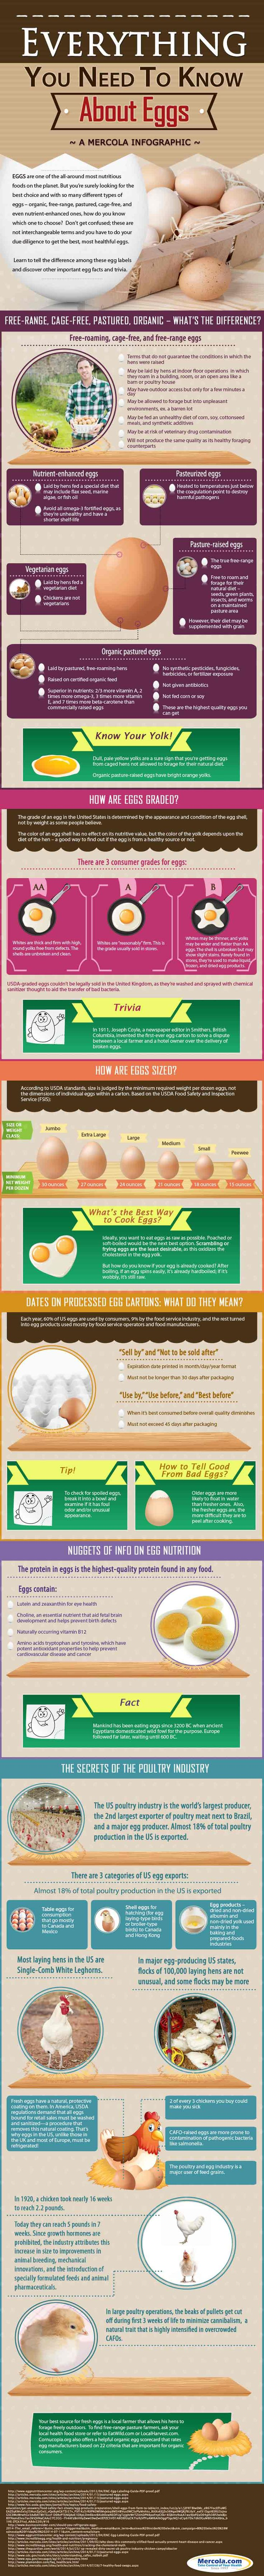 18 Infographic That Include All You Need To Know About Chicken And Egg.